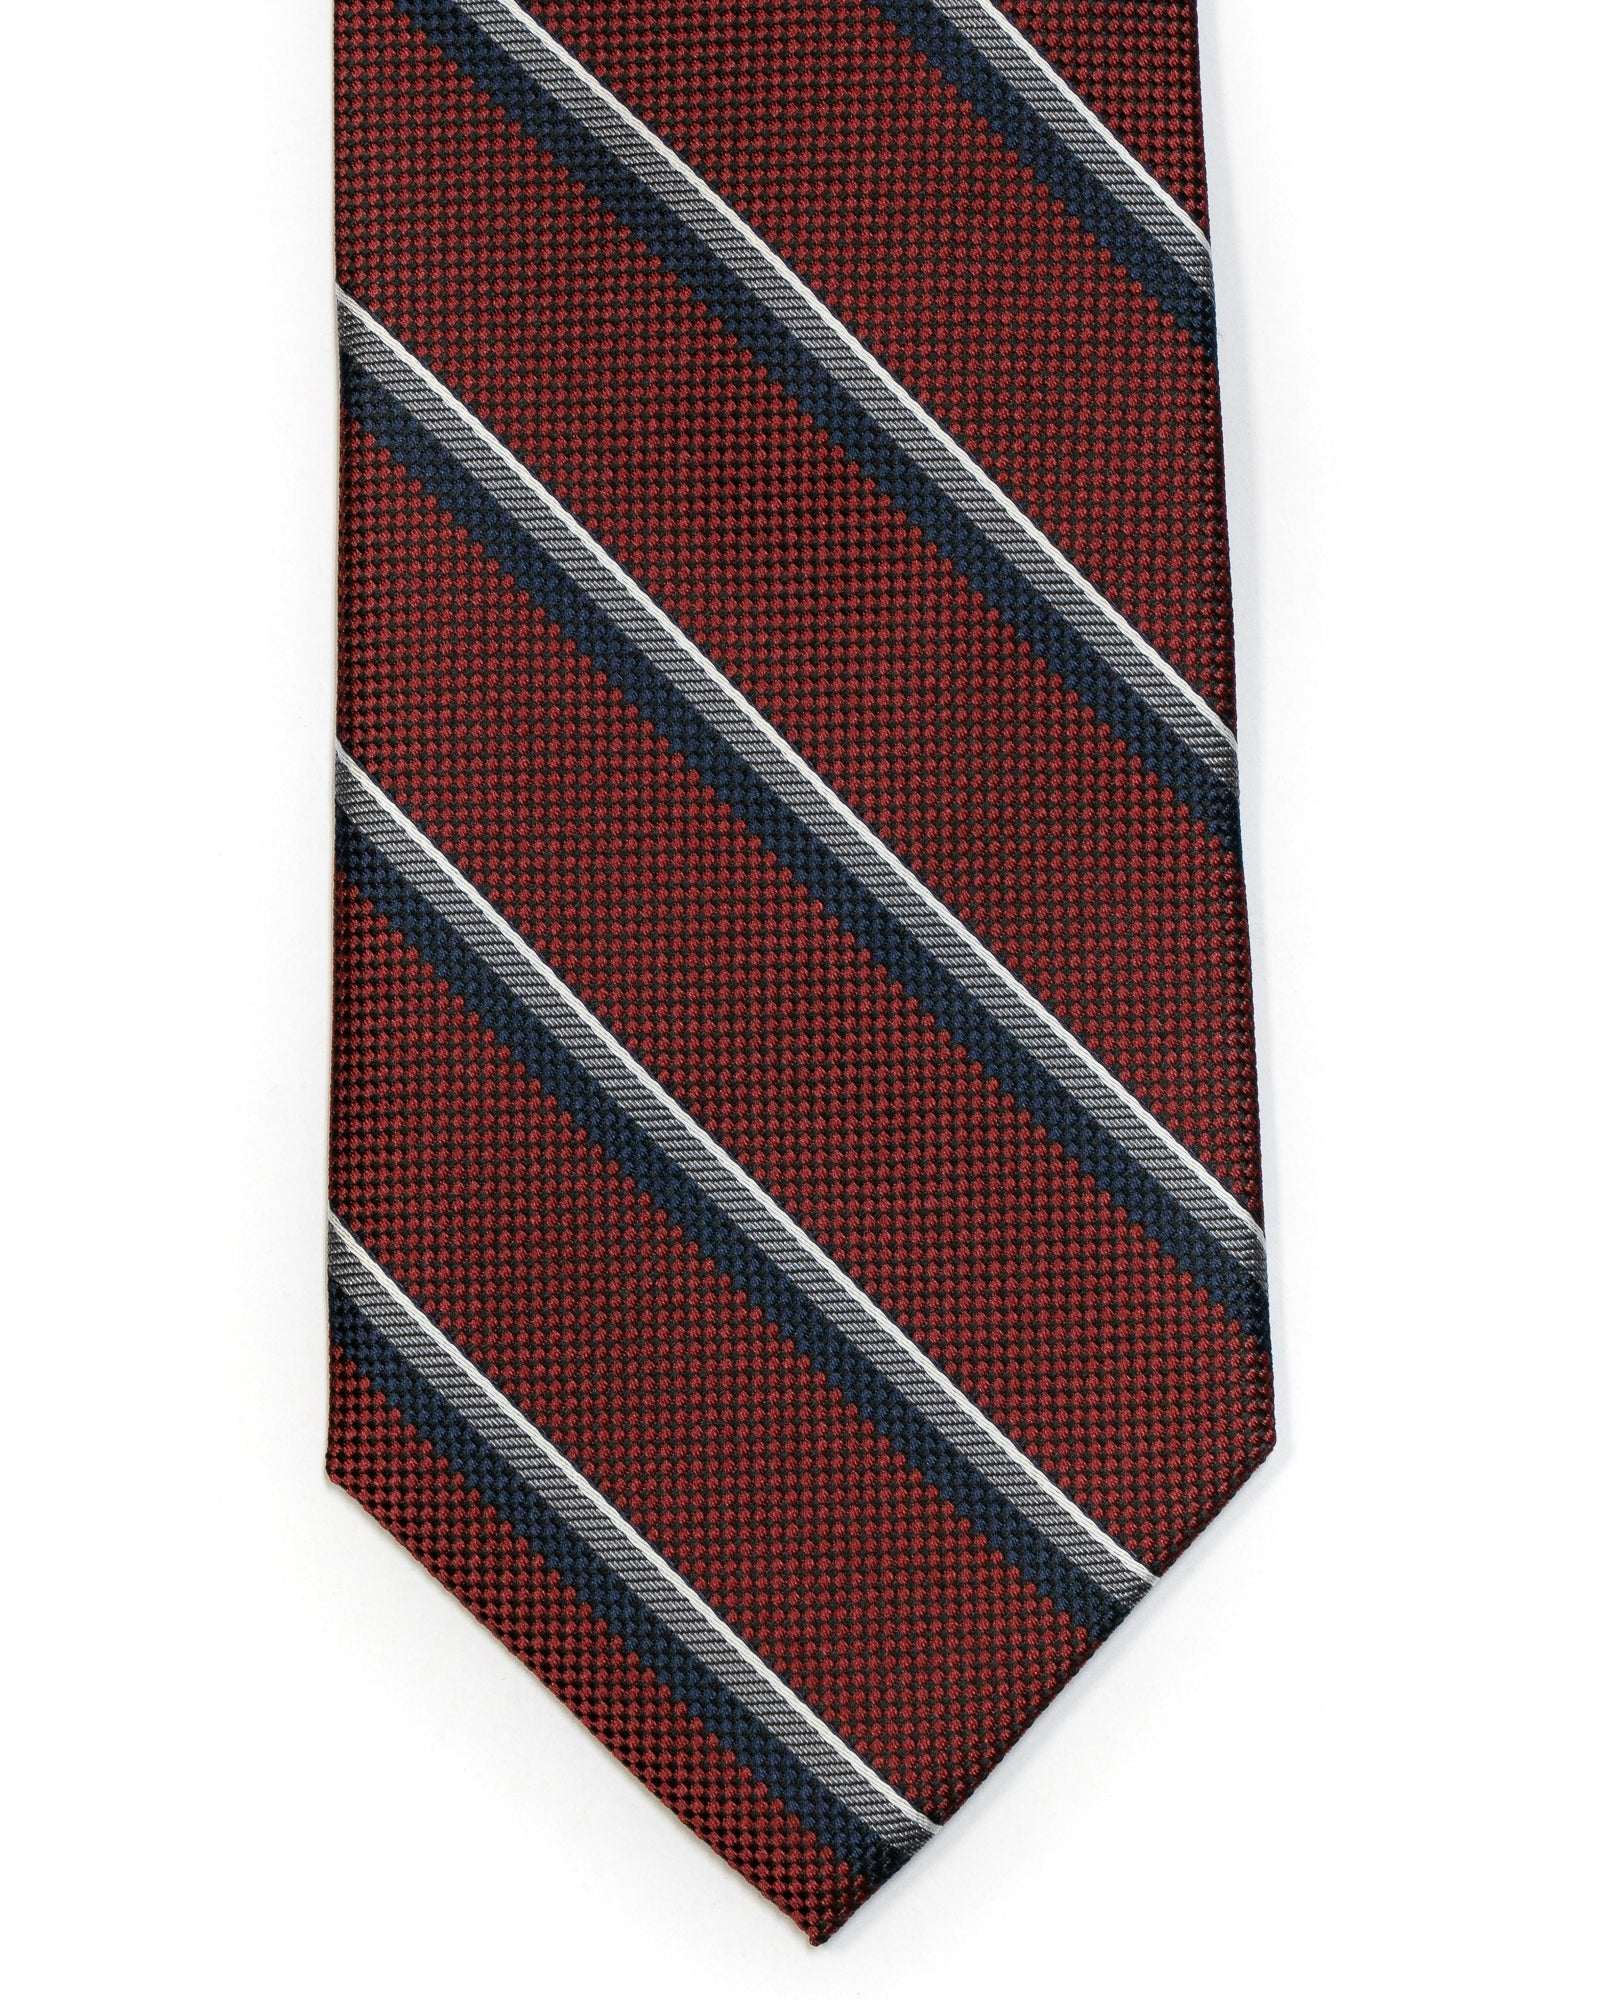 Silk Tie in Burgundy With Navy Stripe - Rainwater's Men's Clothing and Tuxedo Rental